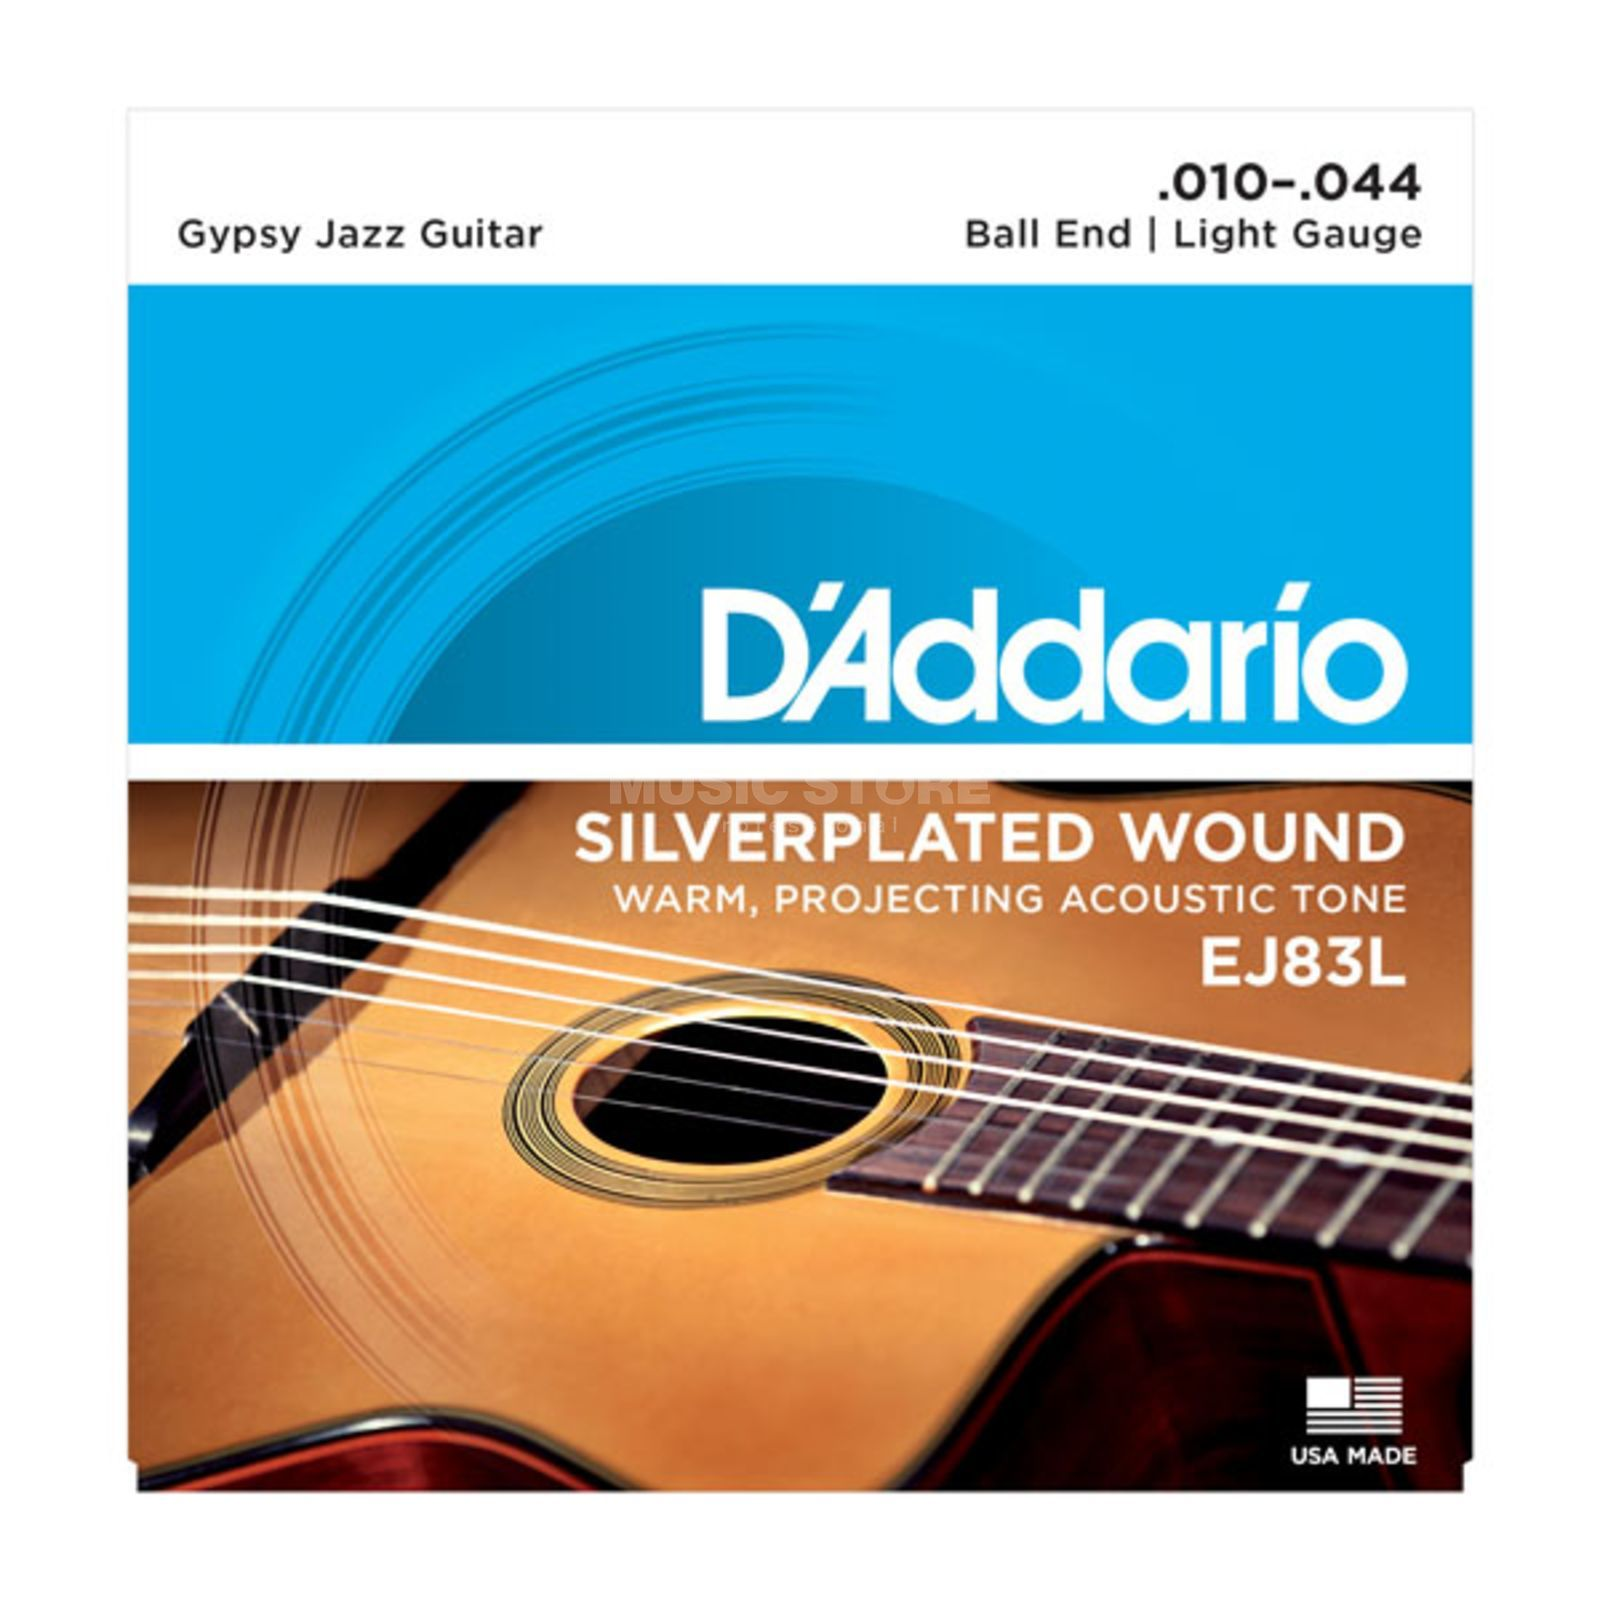 D'Addario Gypsy Jazz Saiten EJ83L 10-44 Silverplated Wound Produktbild